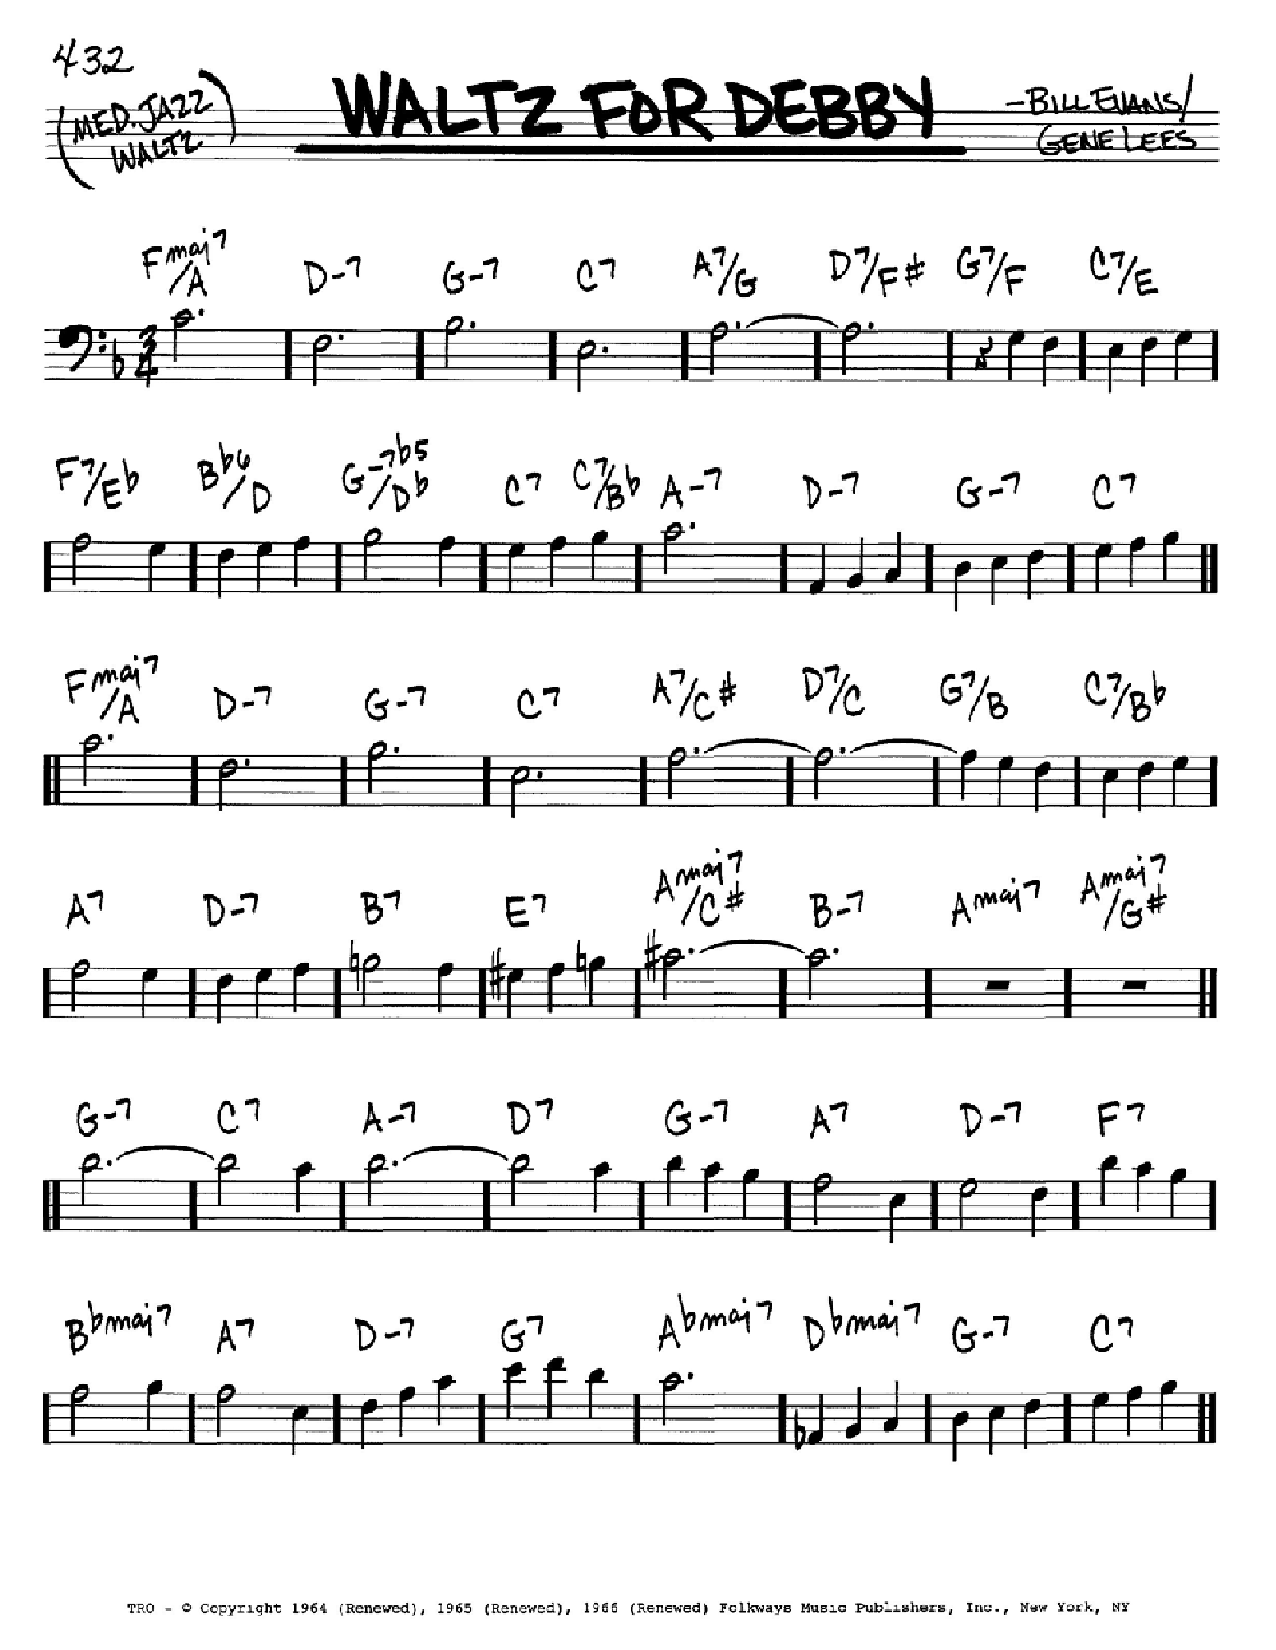 Bill Evans Sheet music free download in PDF or MIDI on ...